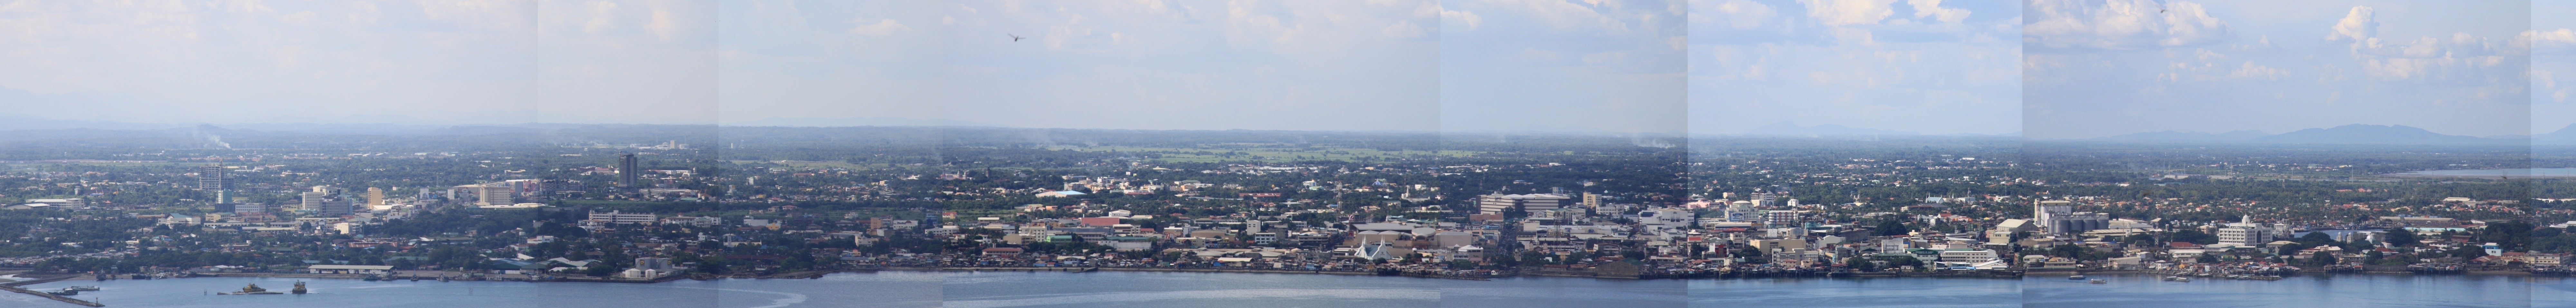 Iloilo Skyline and Cityscape as seen from Balaan Bukid in Jordan, Guimaras, the Philippines